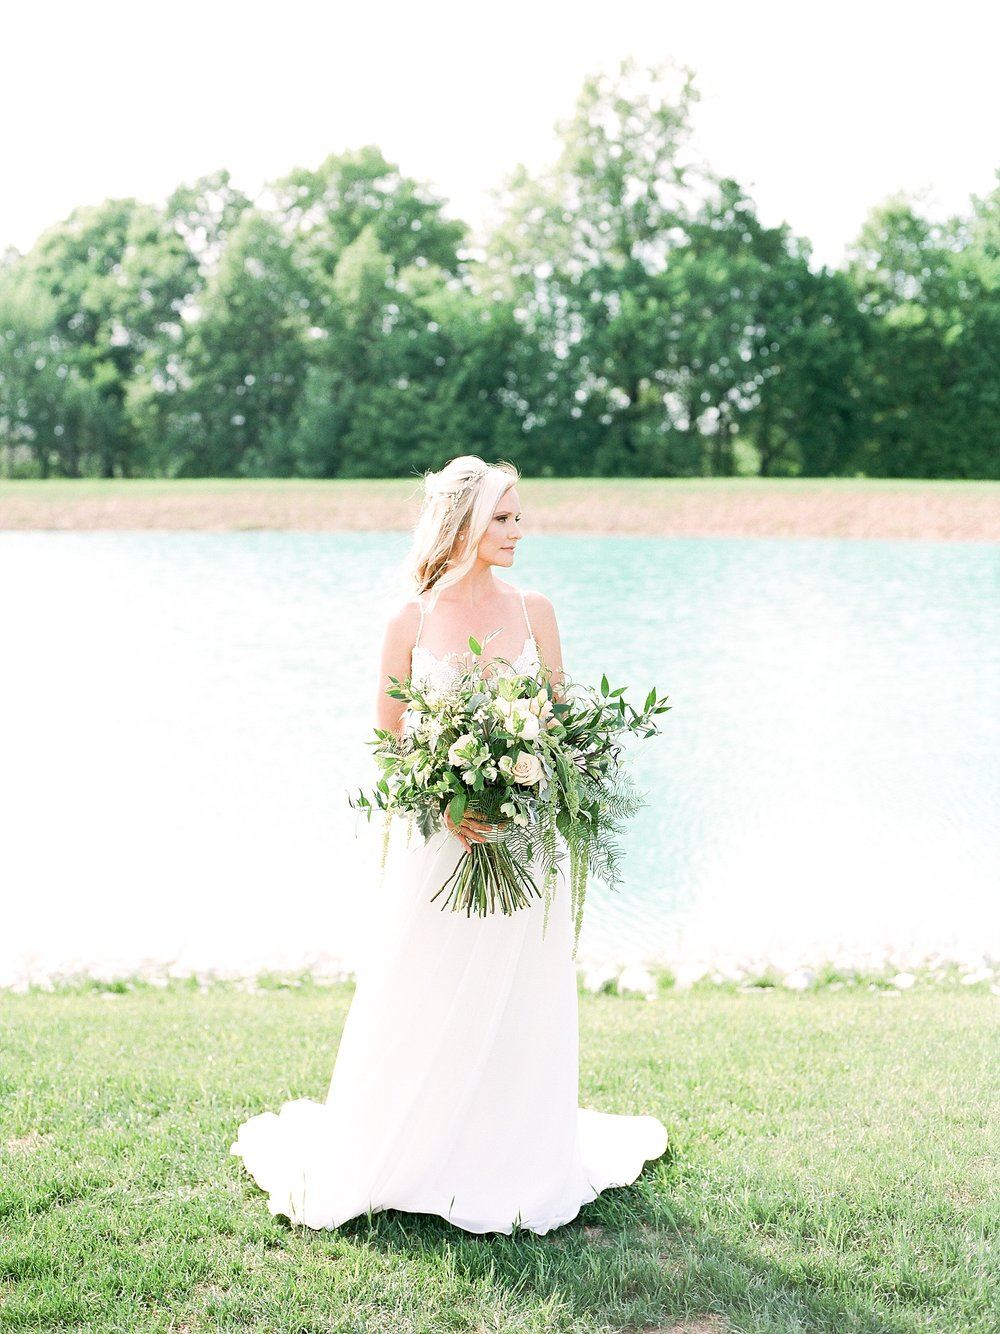 Textural Organic Wedding in All White Venue by Kelsi Kliethermes Wedding Photographer - Missouri, Midwest, and Destinations_0044.jpg